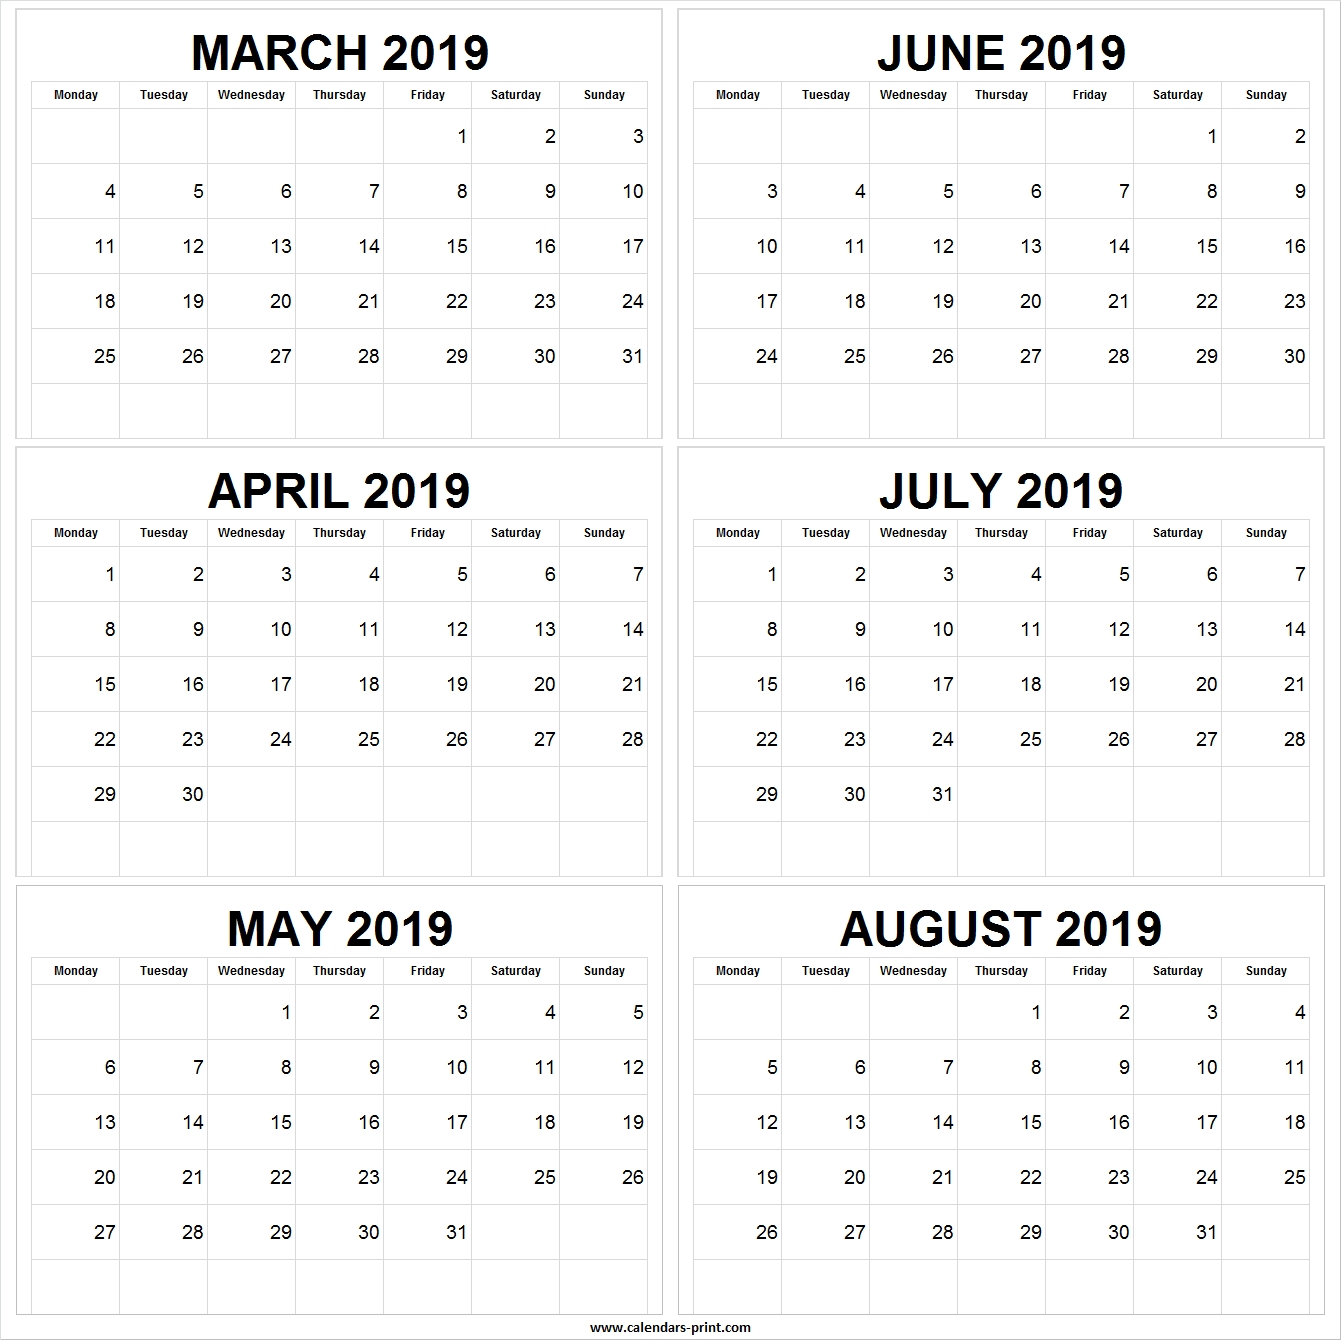 March April May June July August 2019 Calendar   March 2019-June July August Monthly Calendar Print